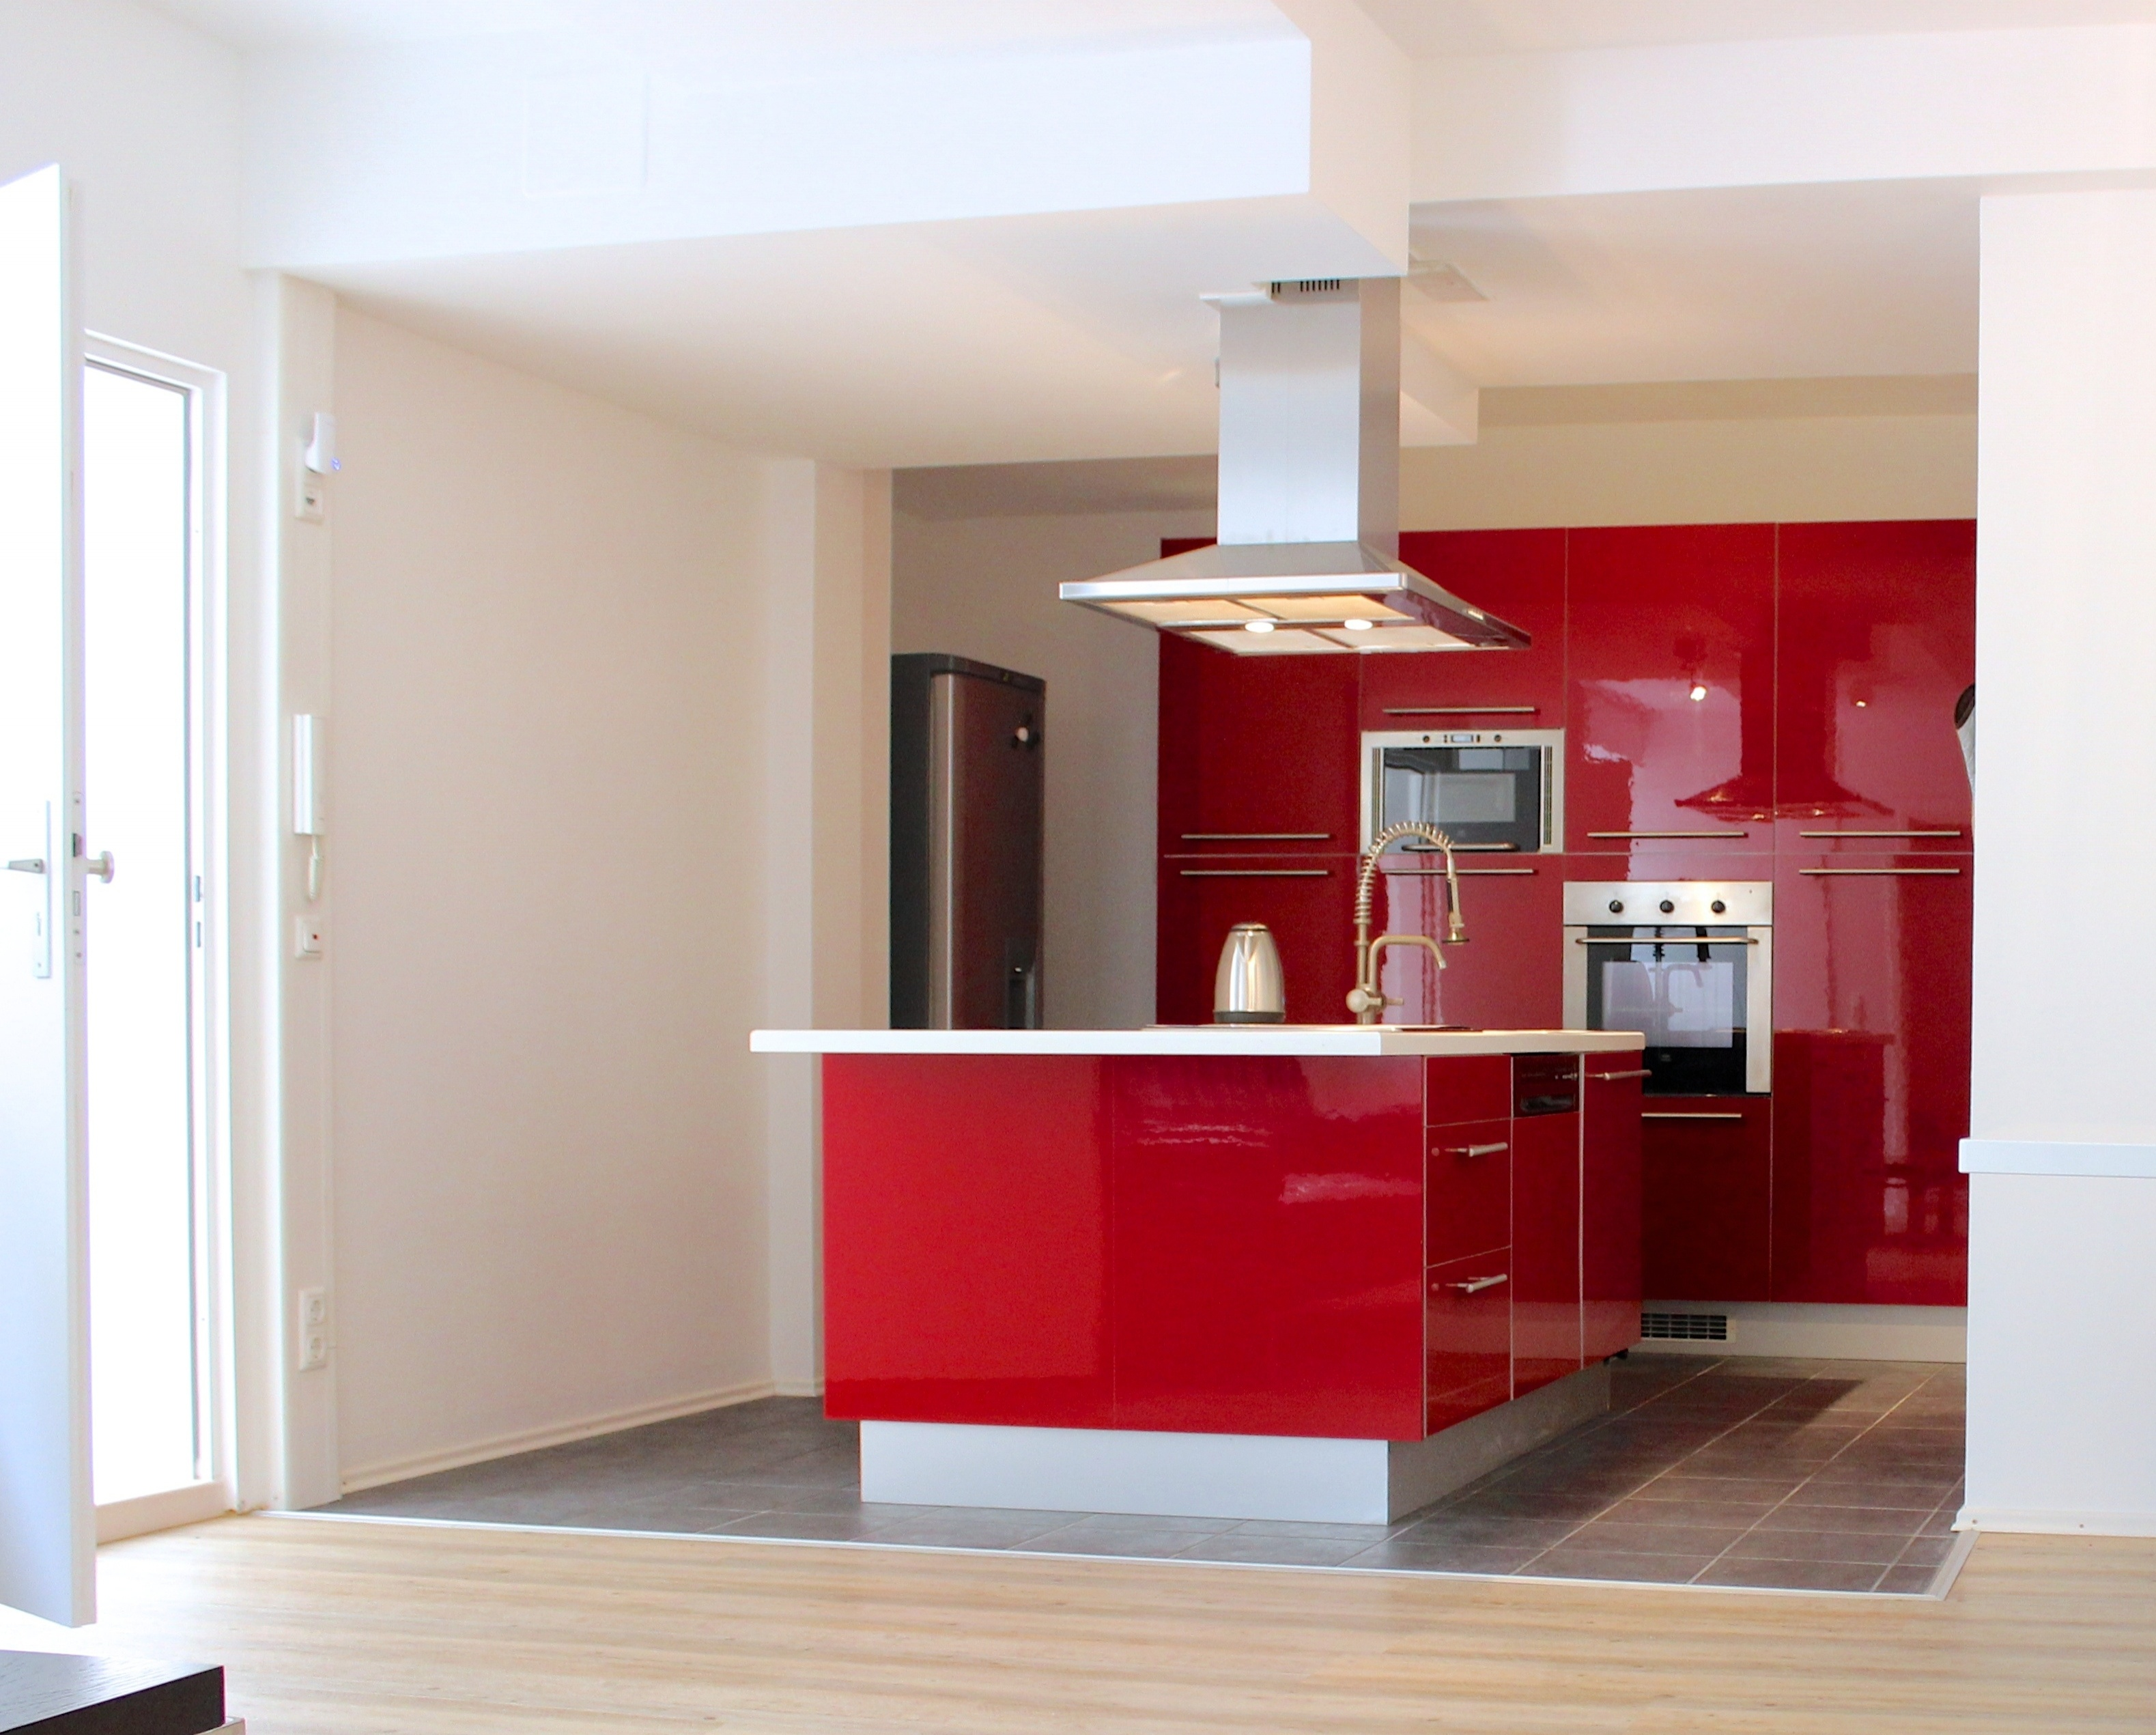 Image of a kitchen in a corporate housing apartment.